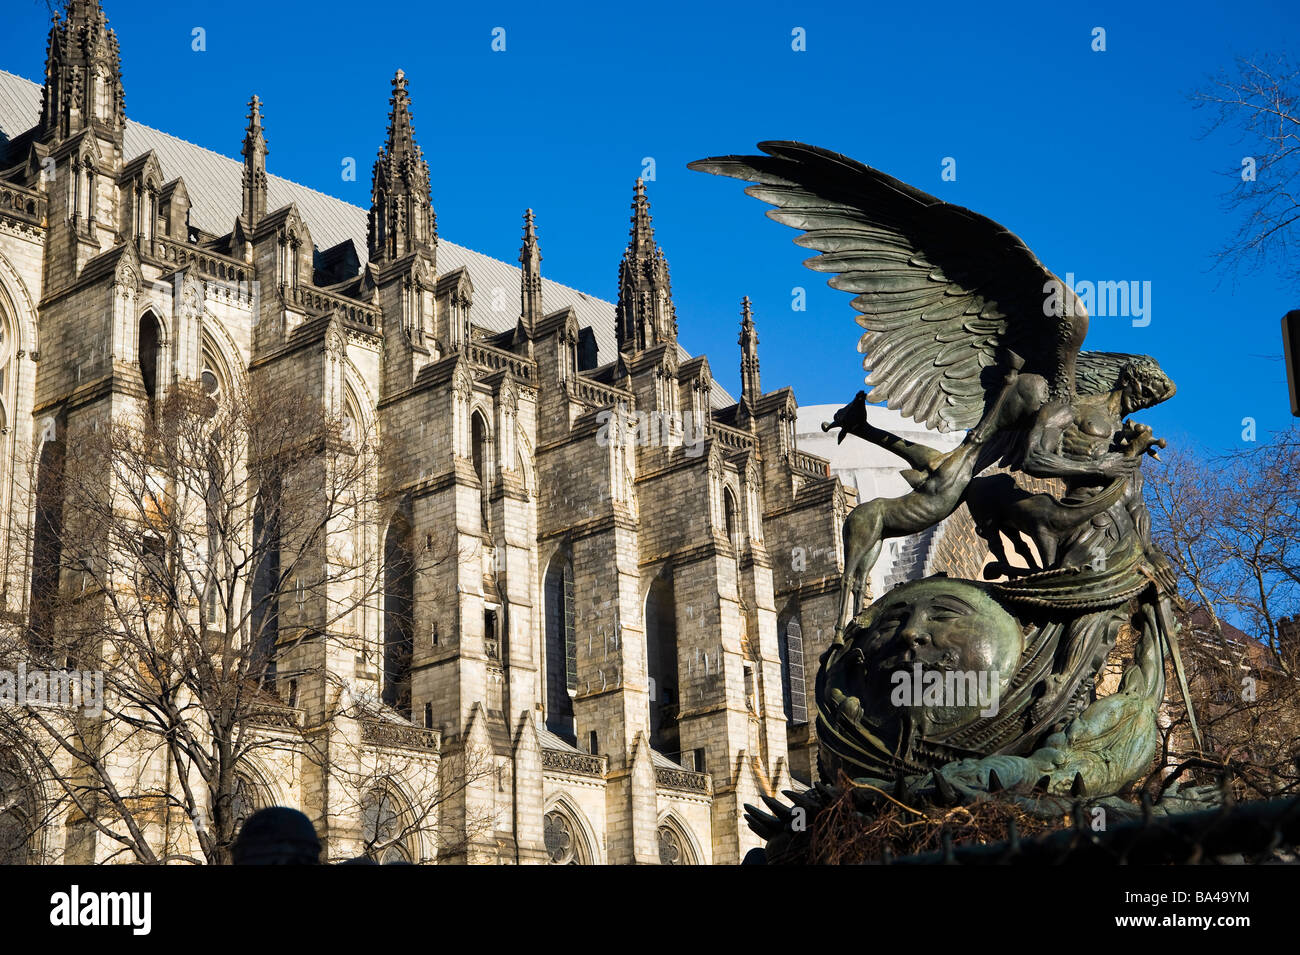 The Peace Fountain and the Cathedral of St. John the Divine. New York City. United States. - Stock Image